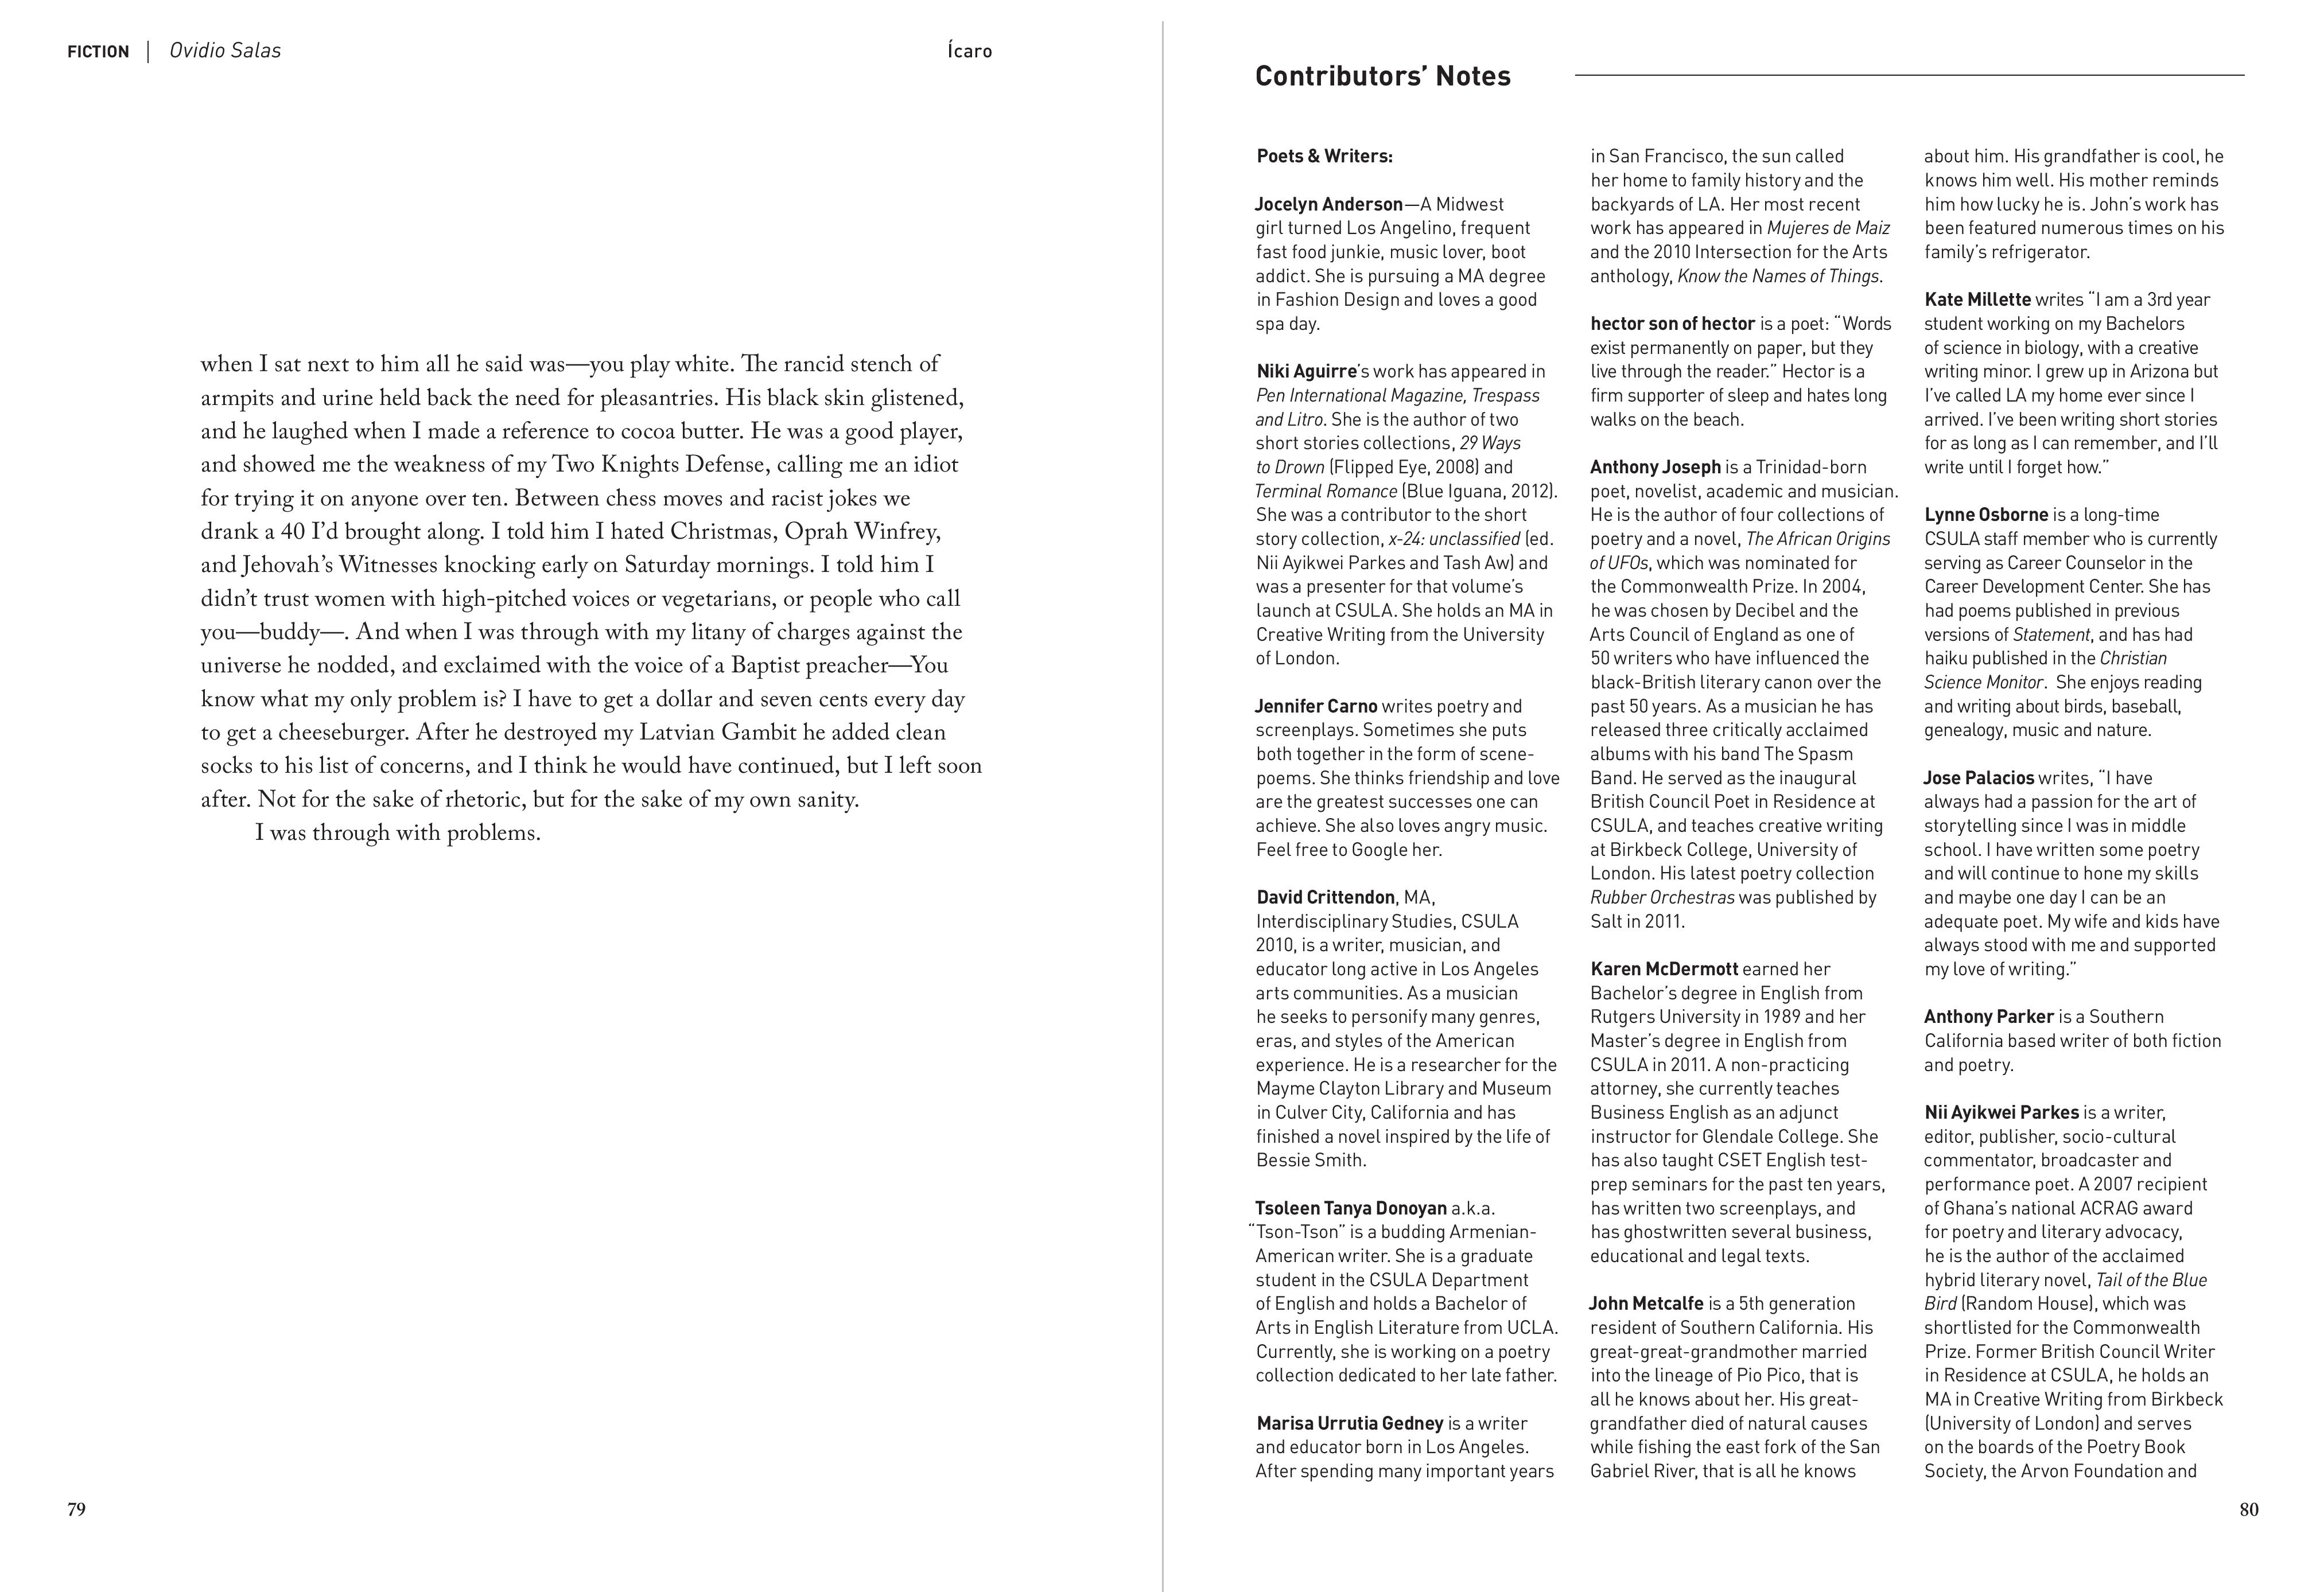 2012 Issue, Pages 79-80